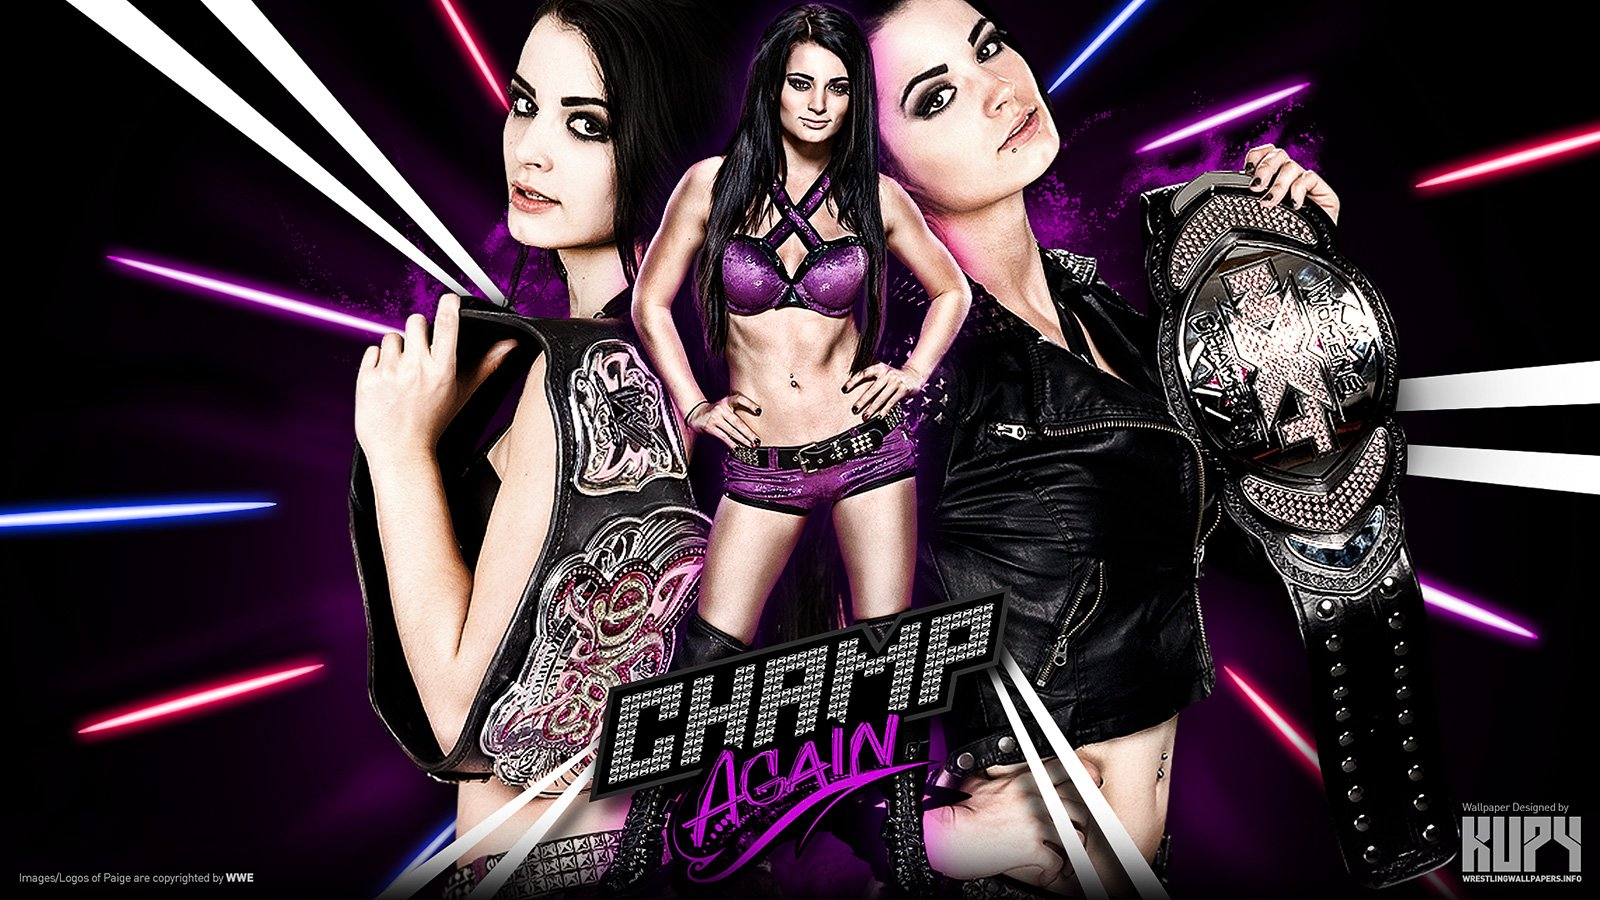 WWE Total Divas Wallpaper   HD Wallpapers Backgrounds of Your Choice 1600x900